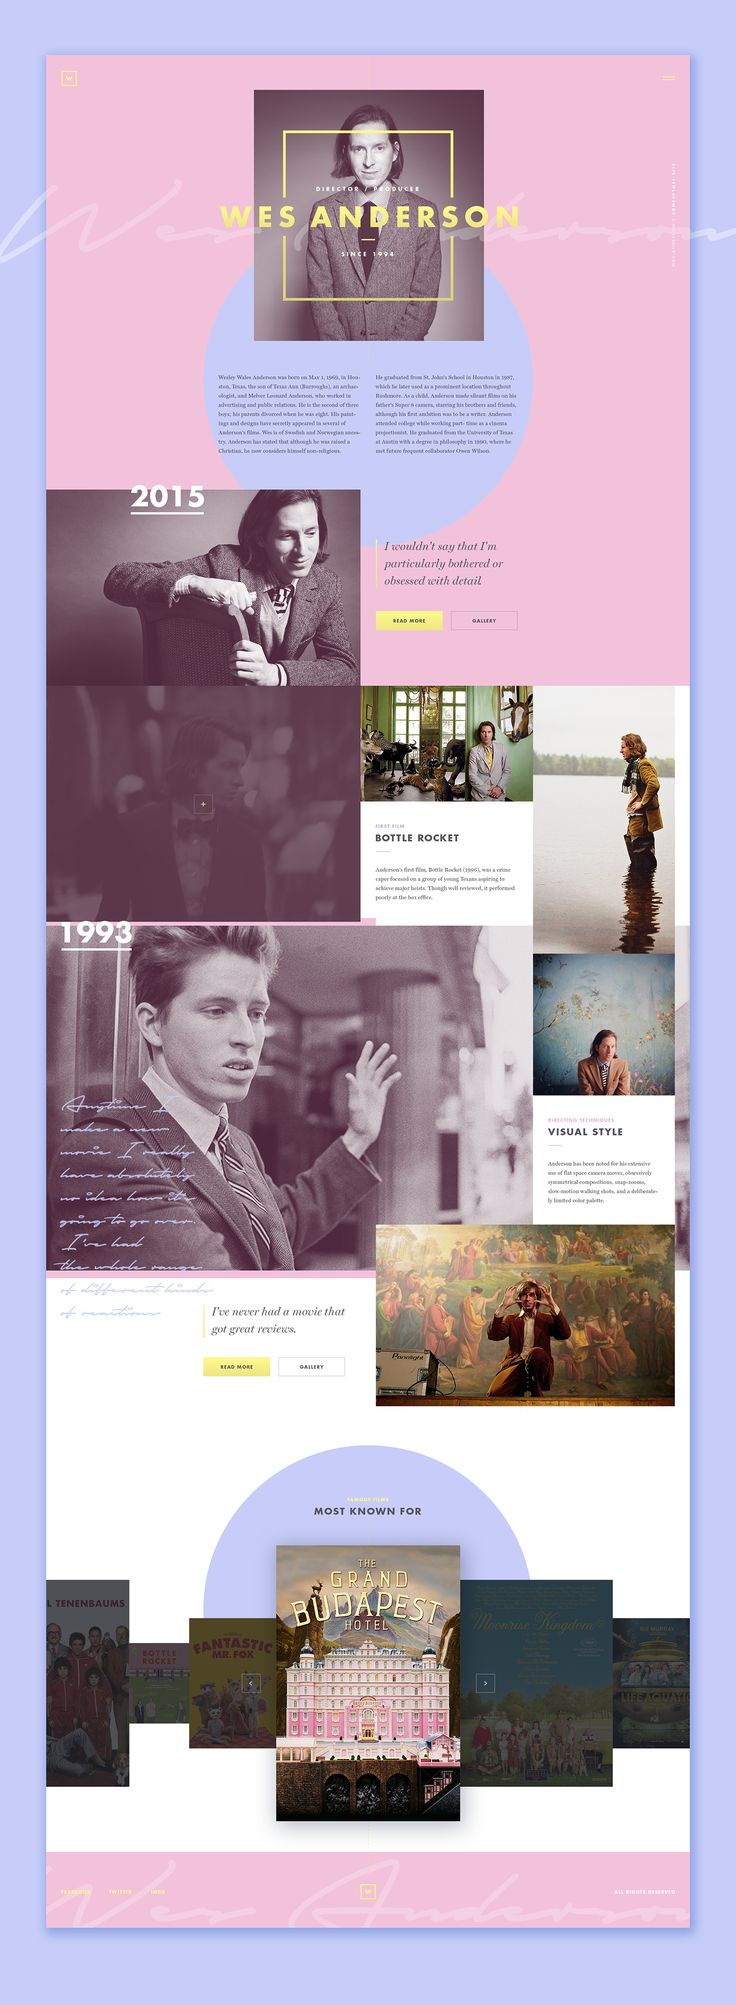 Wes Anderson (concept) on Behance